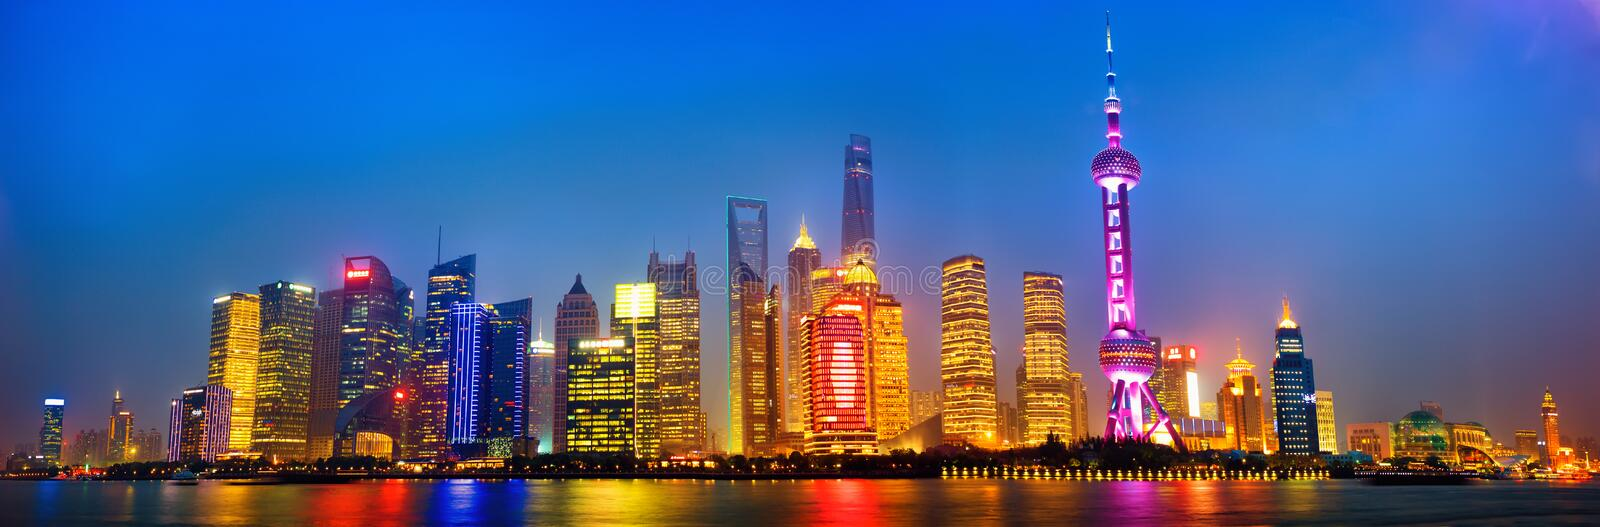 Shanghai Pudong panorama stock images